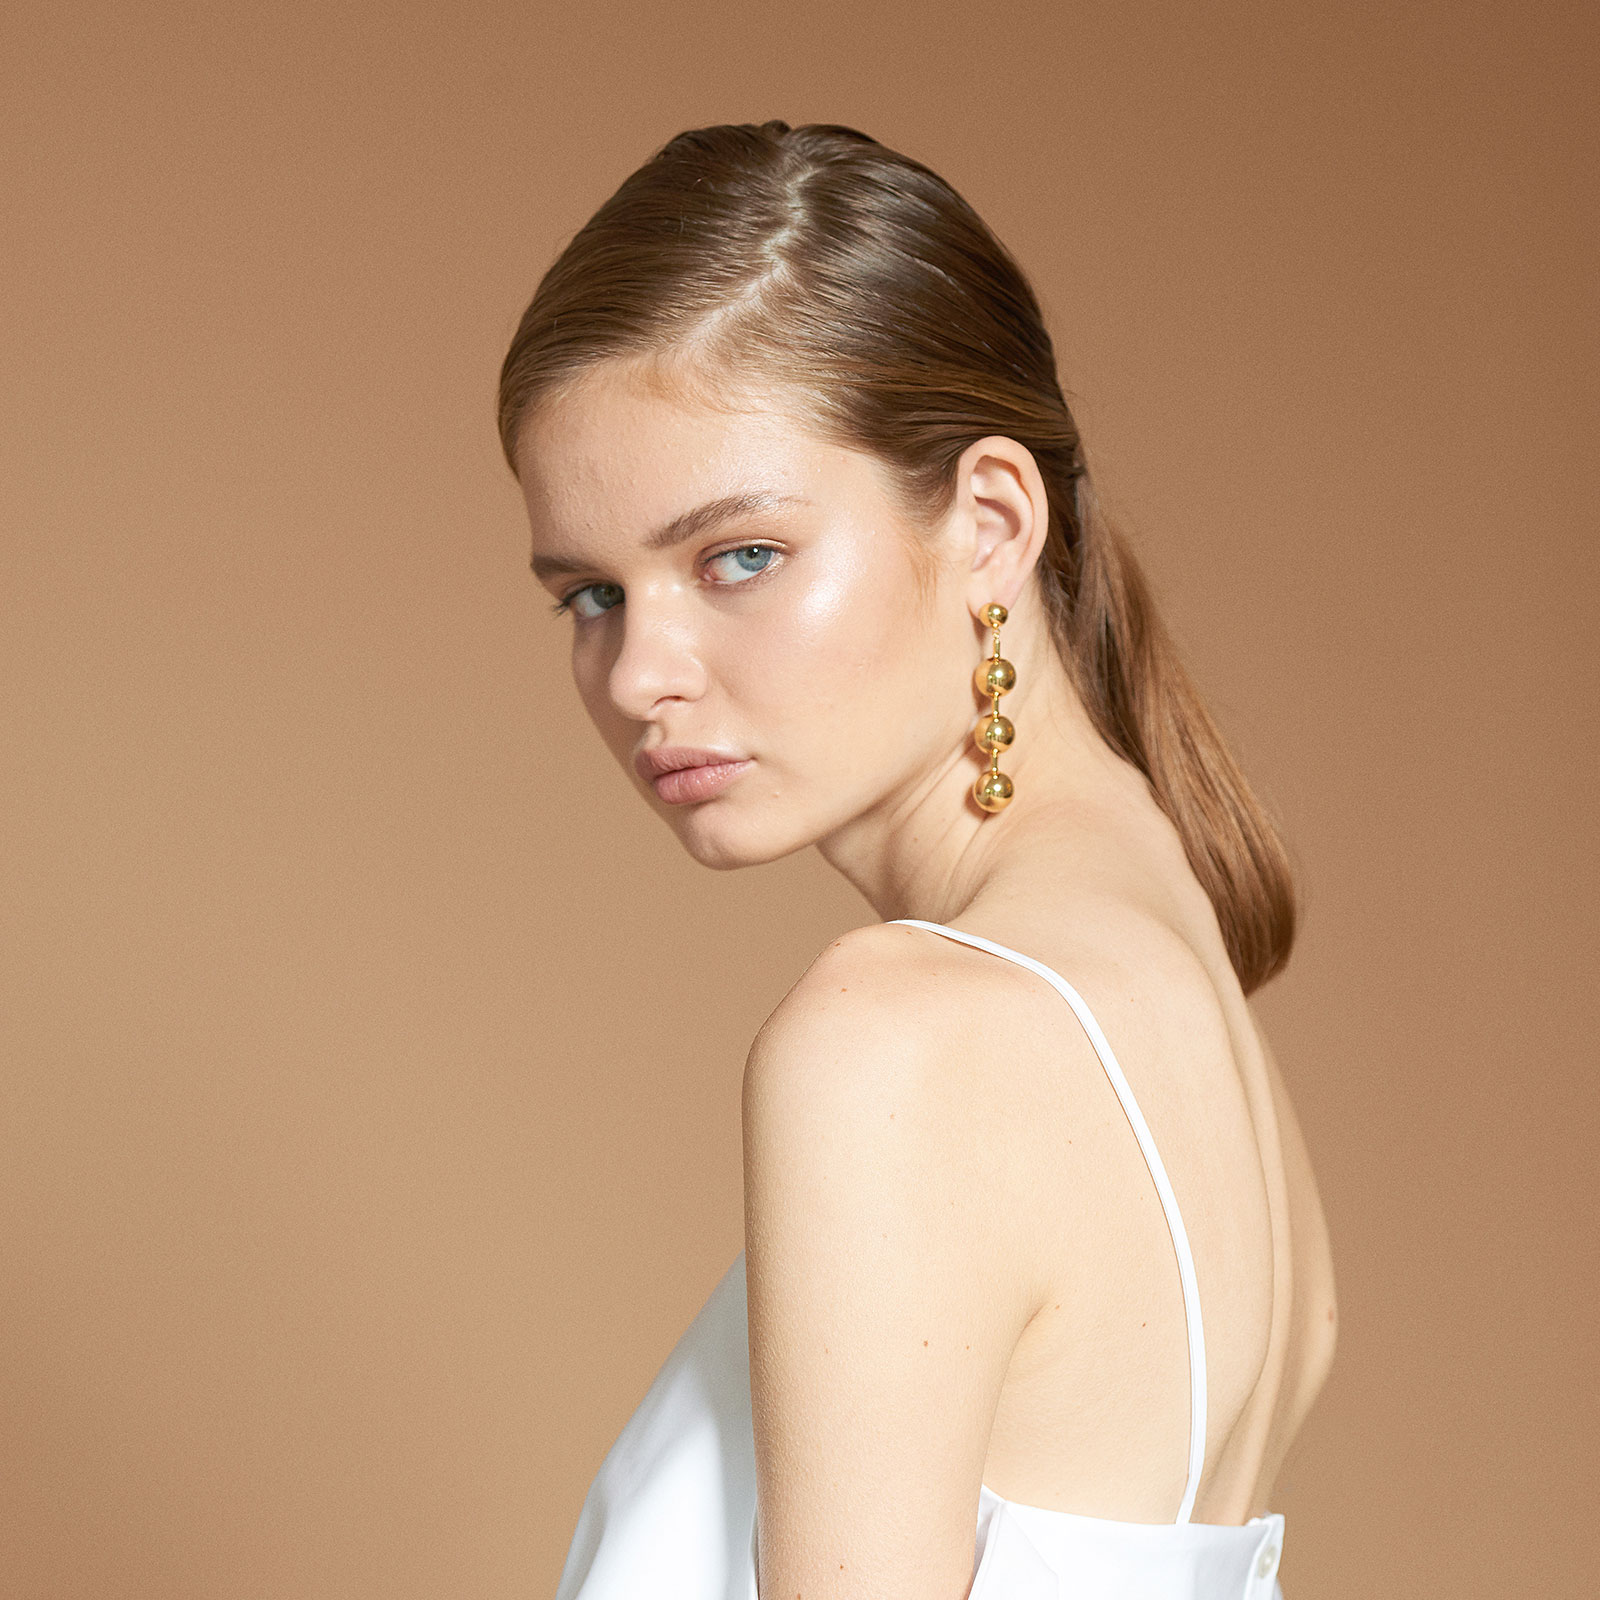 woman looking at camera sideways with gold earrings and white tank top